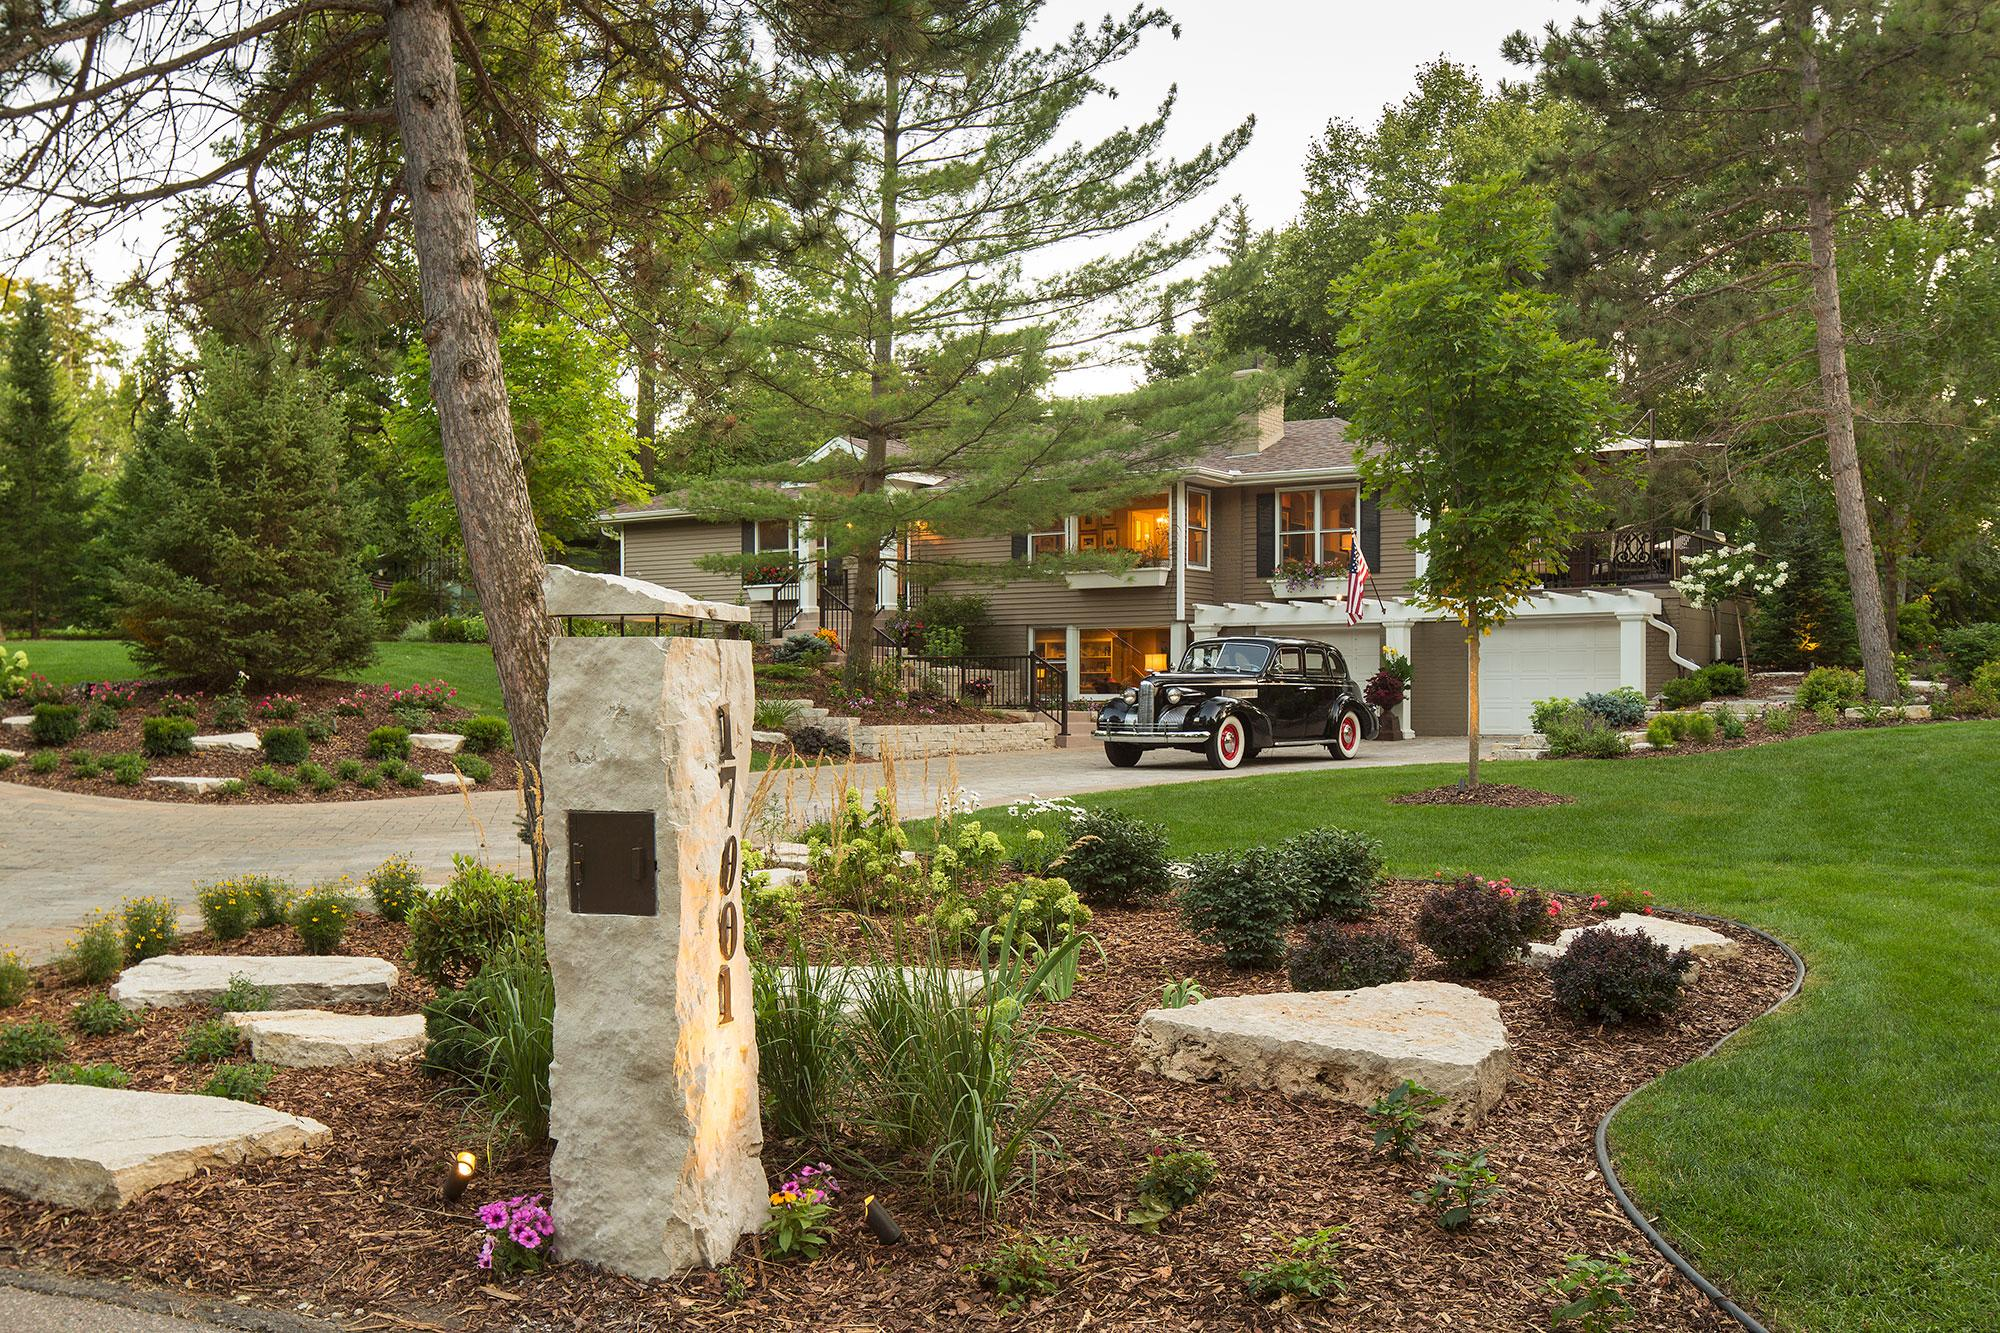 Stone Mailbox with LED lighting Surrounded by Shrubs and Perennials